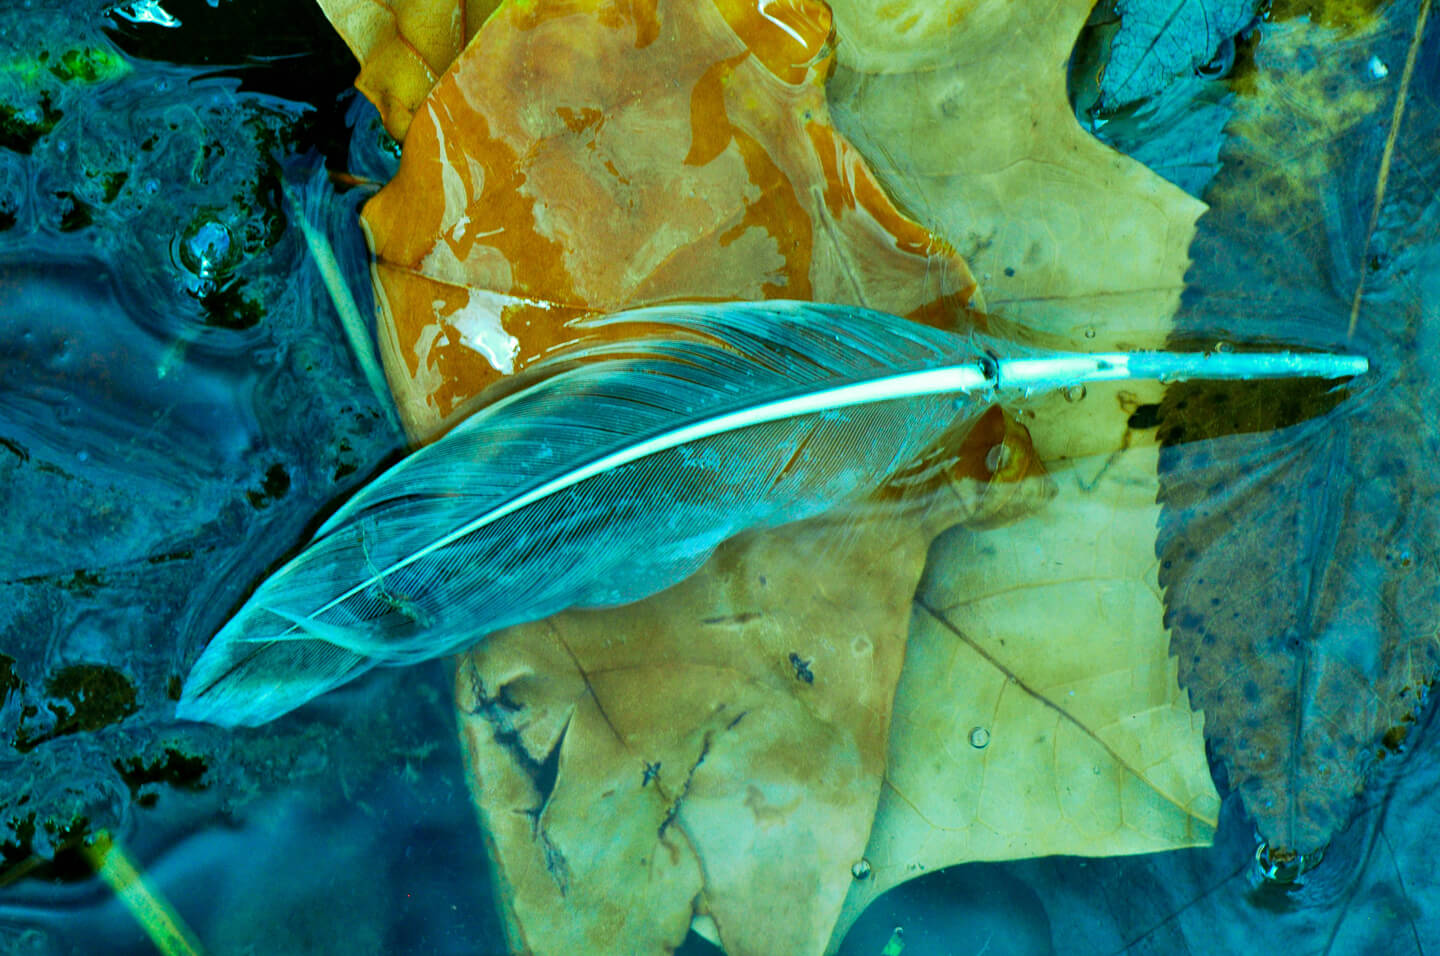 Julia Walkowicz - Feathers and leaves